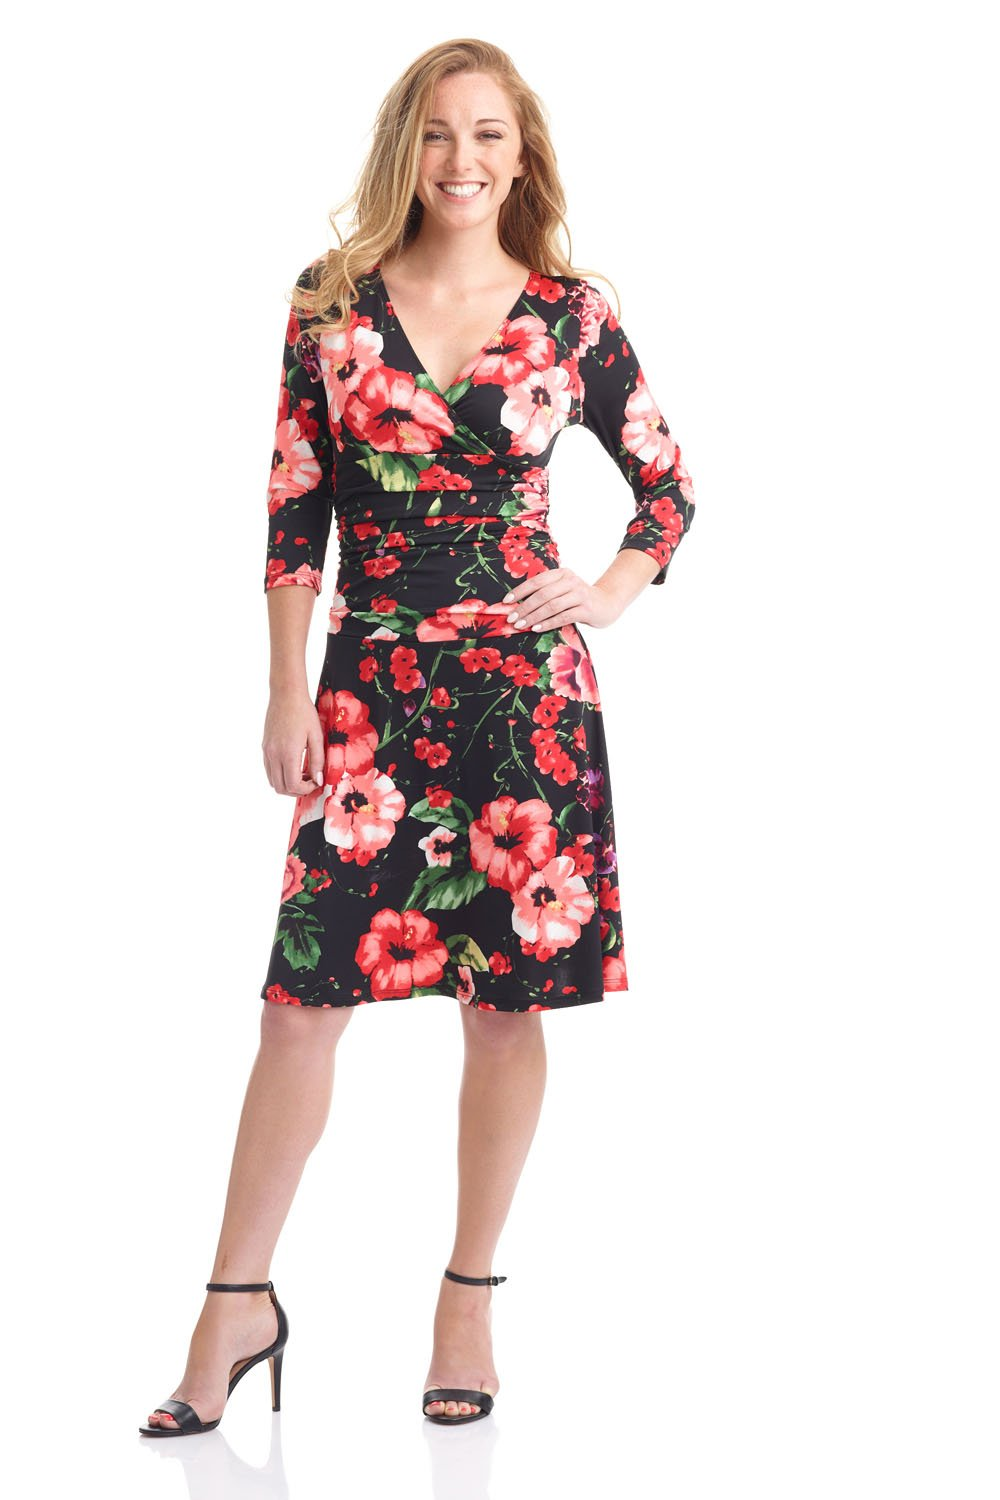 Rekucci Women's Slimming 3/4 Sleeve Fit-and-Flare Crossover Tummy Control Dress (14,Night Garden)